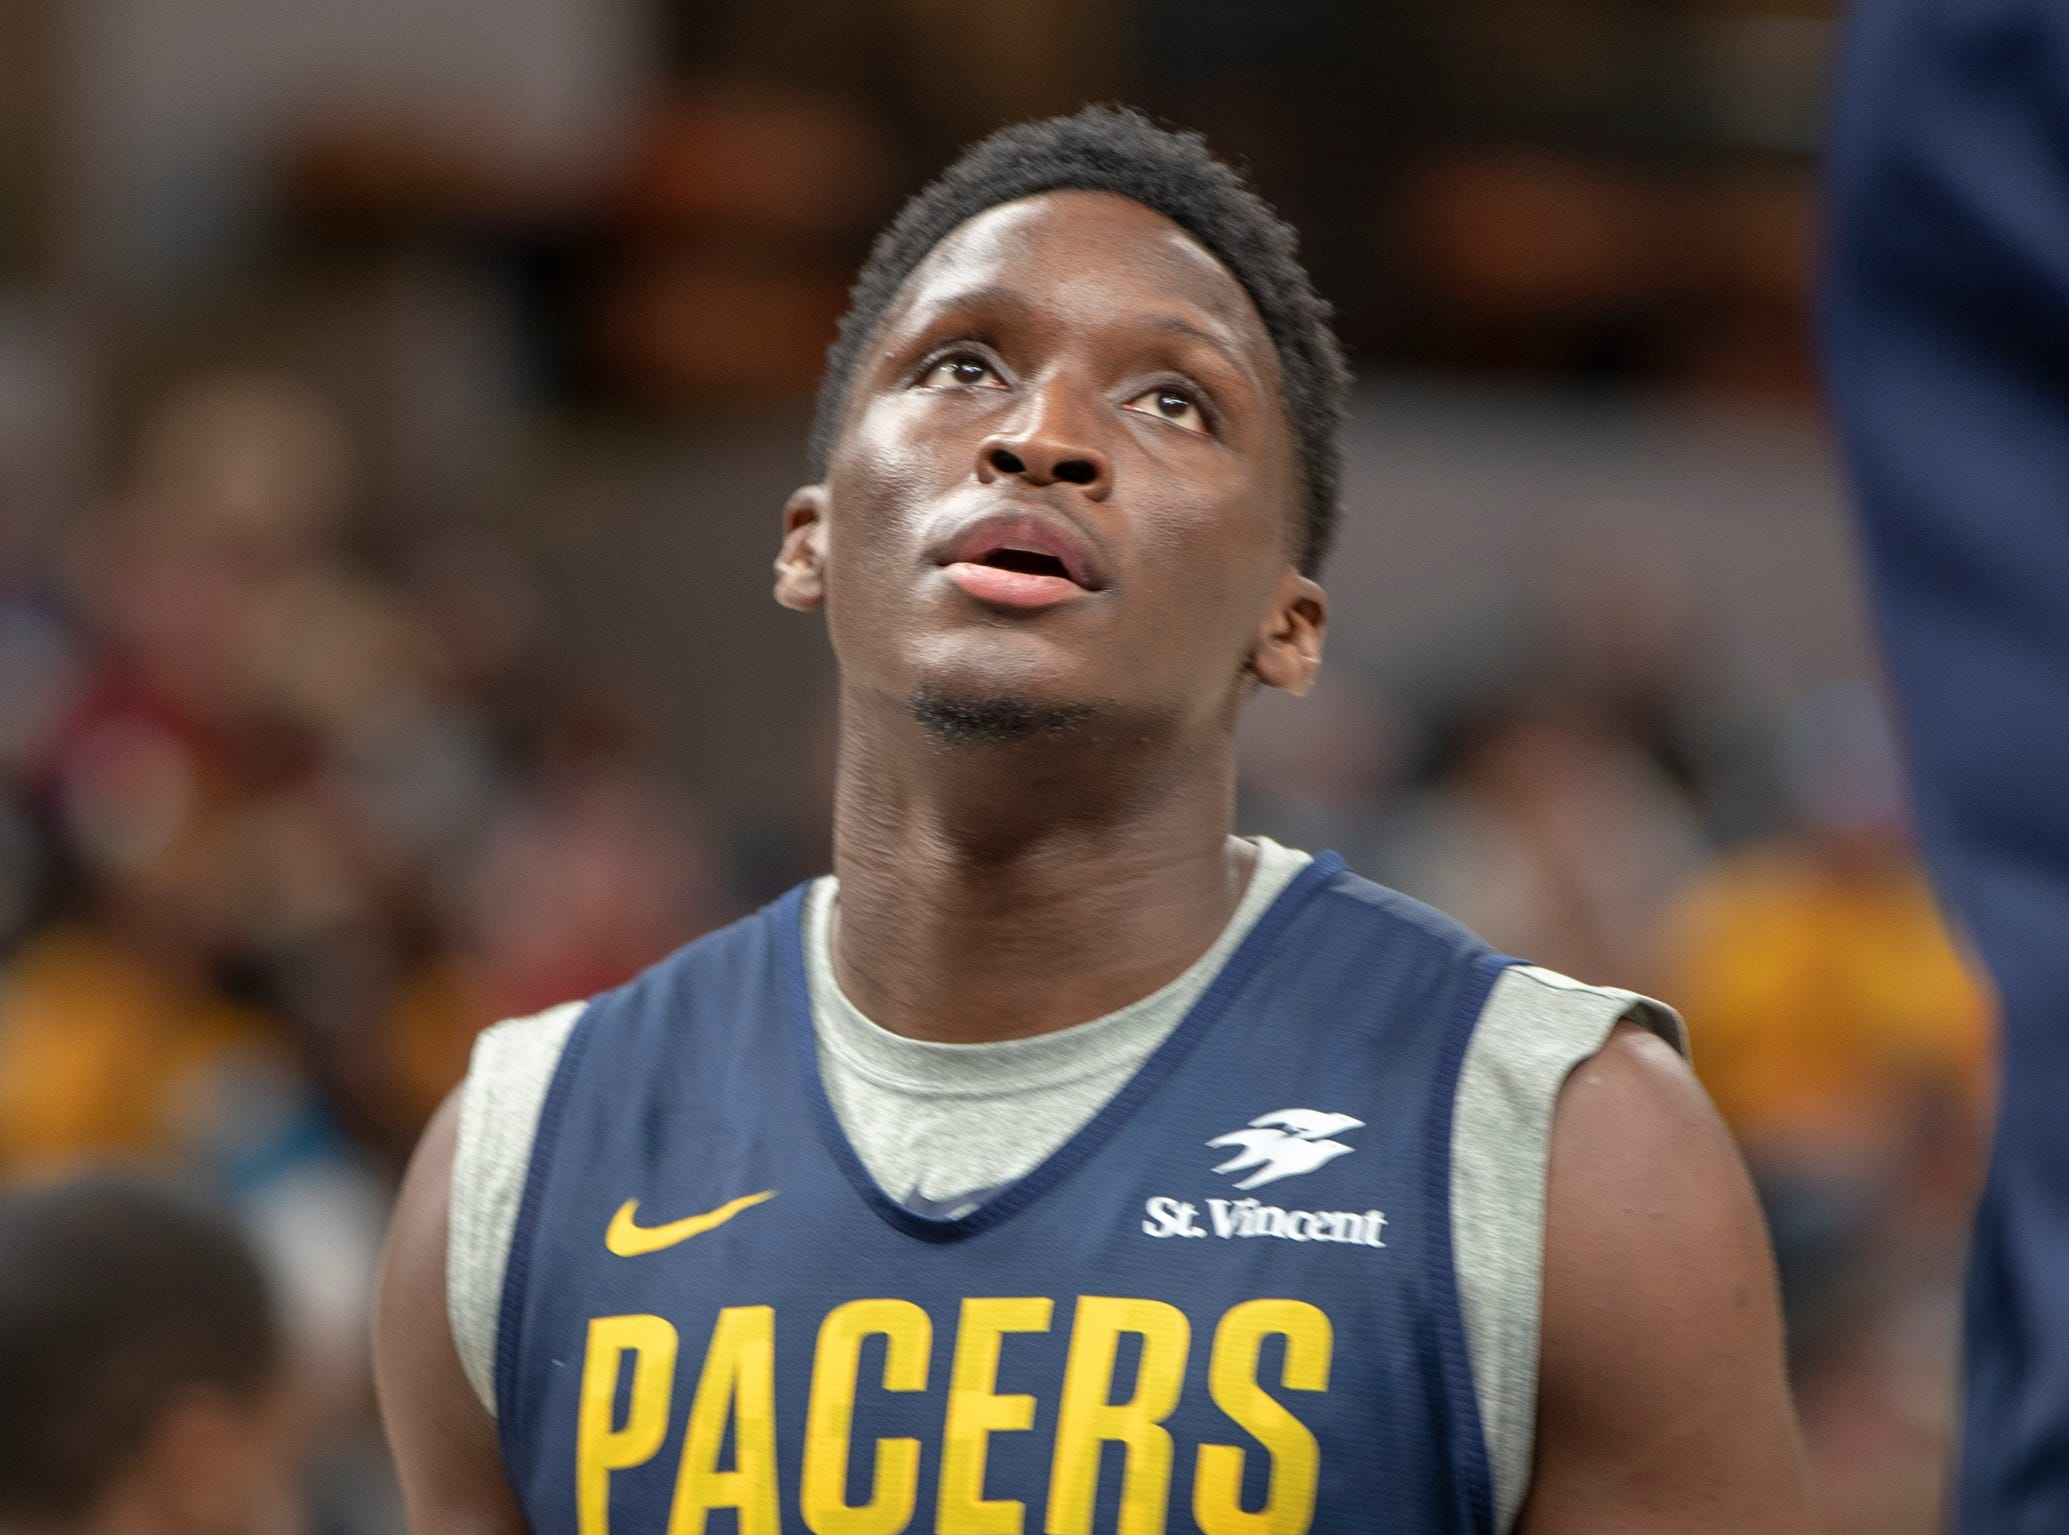 Victor Oladipo on court during the Pacers FanJam to kick off the 2018-2019 season.